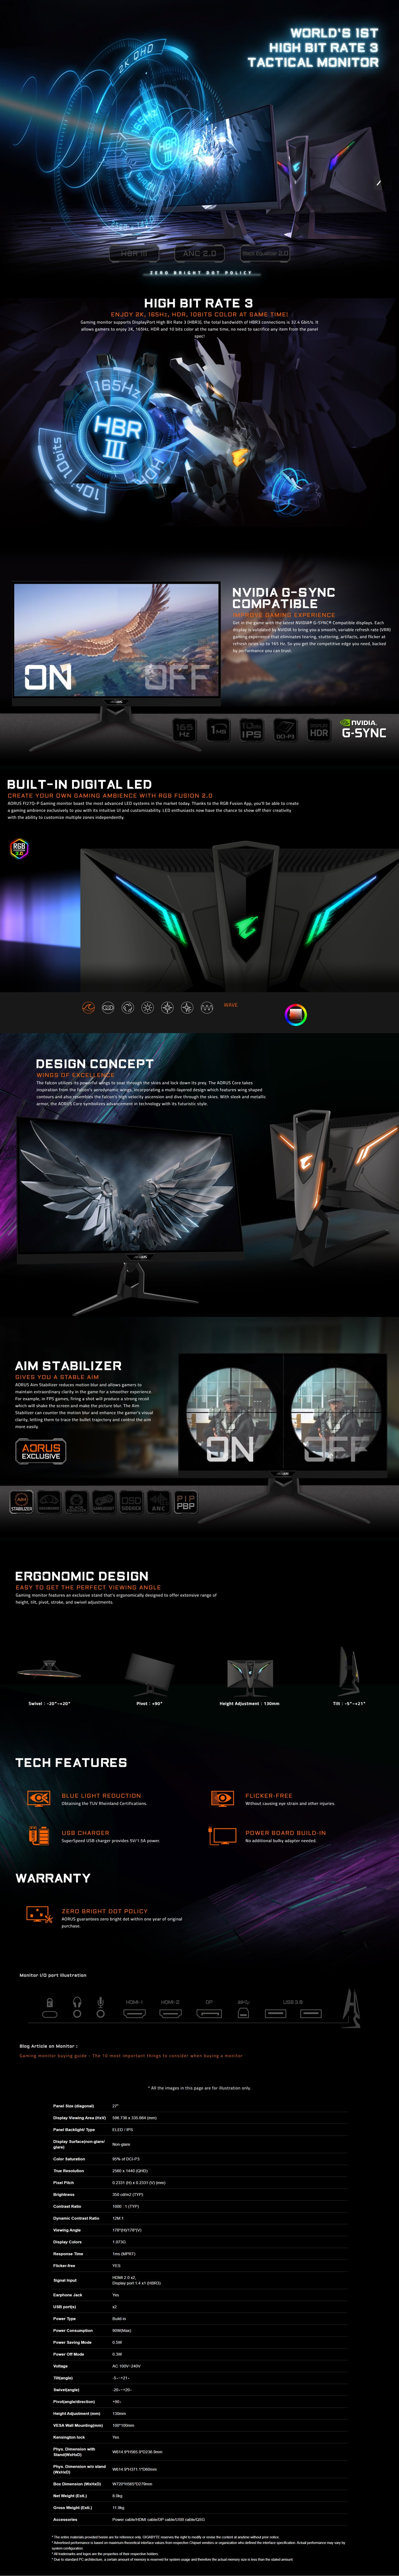 """A large marketing image providing additional information about the product Gigabyte Aorus FI27Q-P 27"""" QHD G-SYNC-C 165Hz 1MS HDR400 IPS LED Gaming Monitor - Additional alt info not provided"""